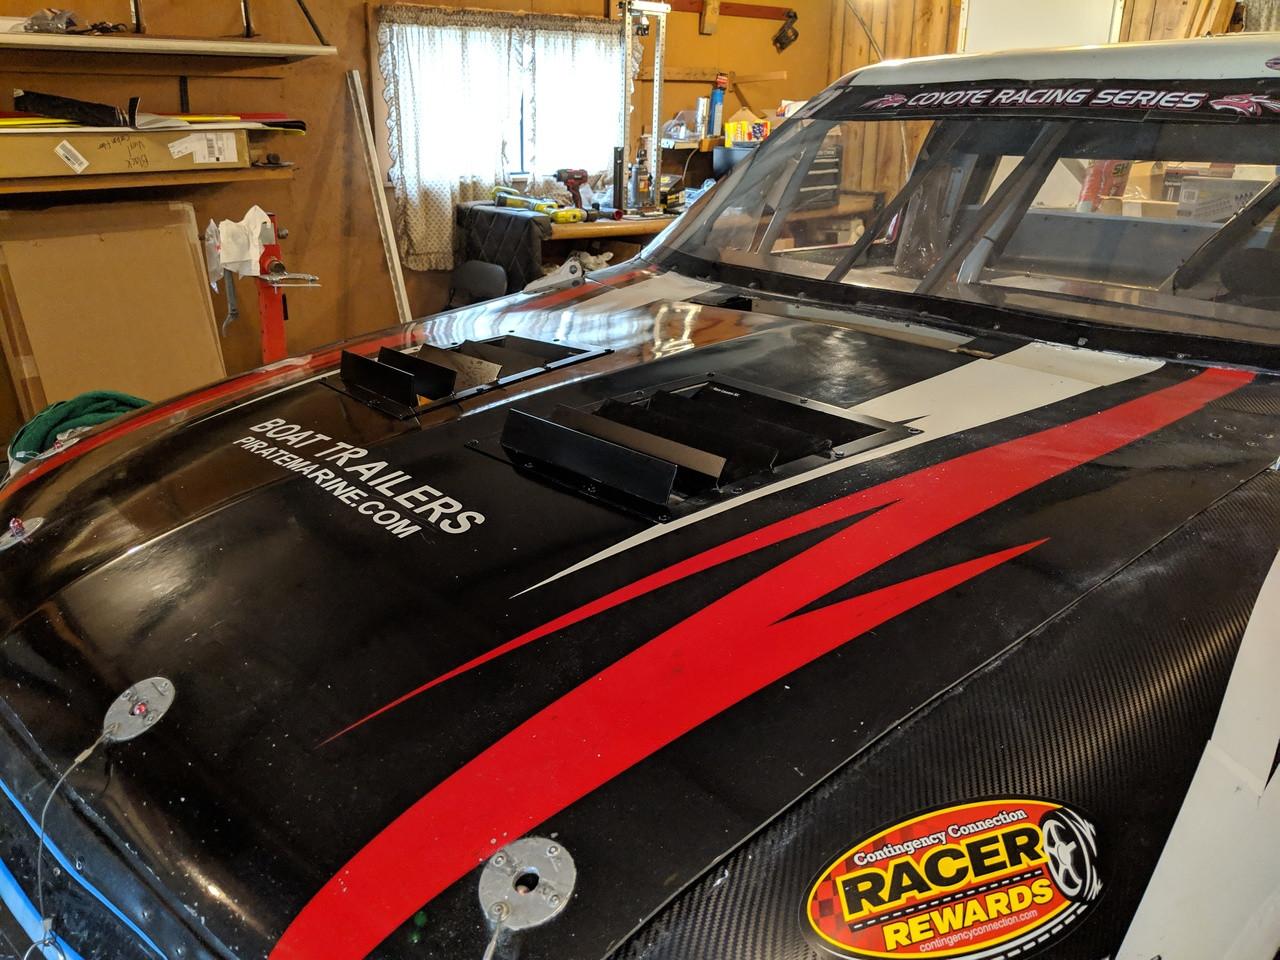 Race Louvers RX trim straight angular pair racing heat extractor installed on a circle track truck series race car.